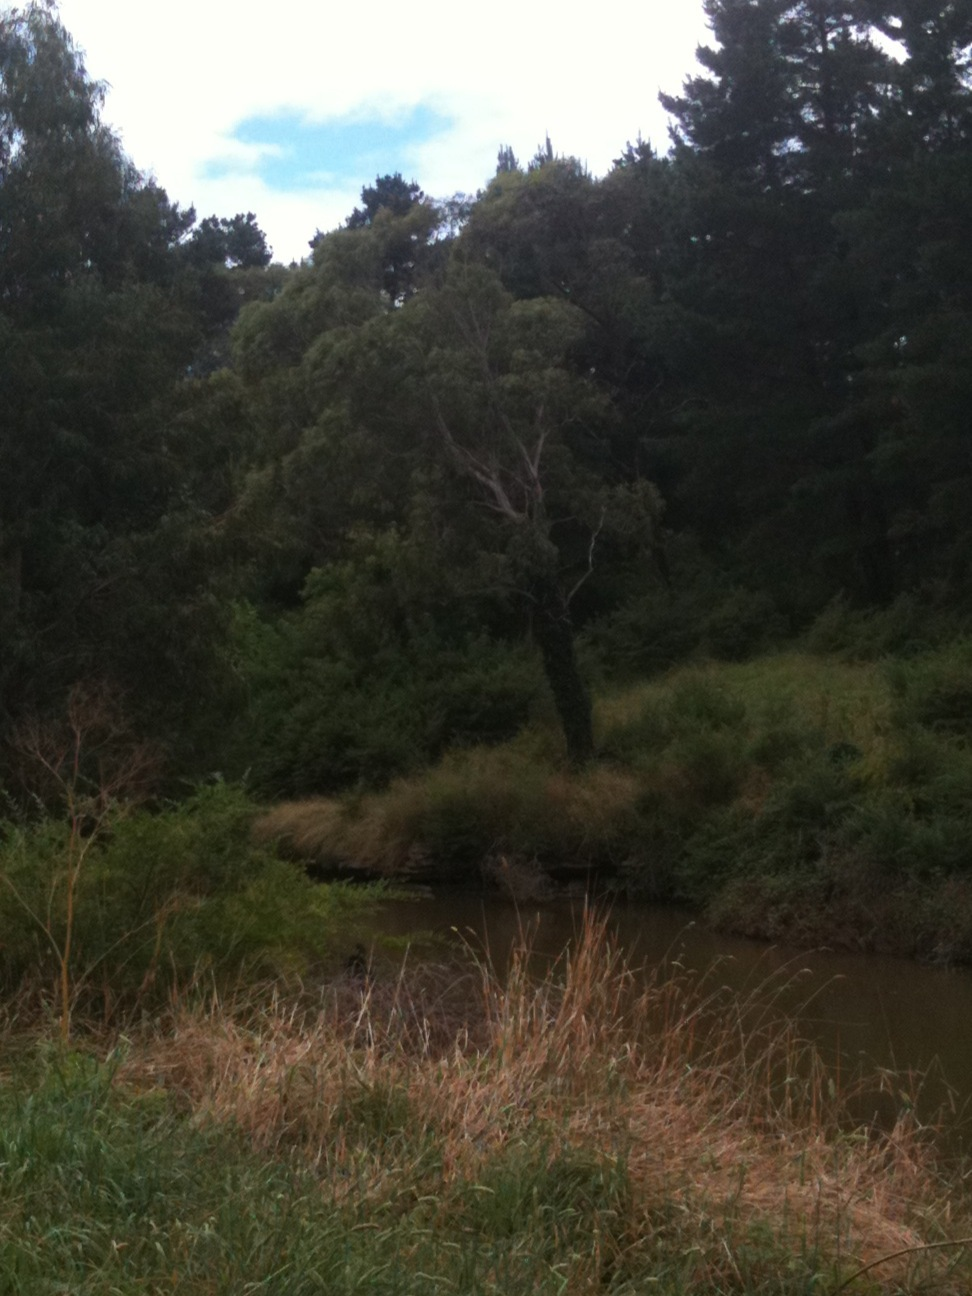 At the Wingecarribee River